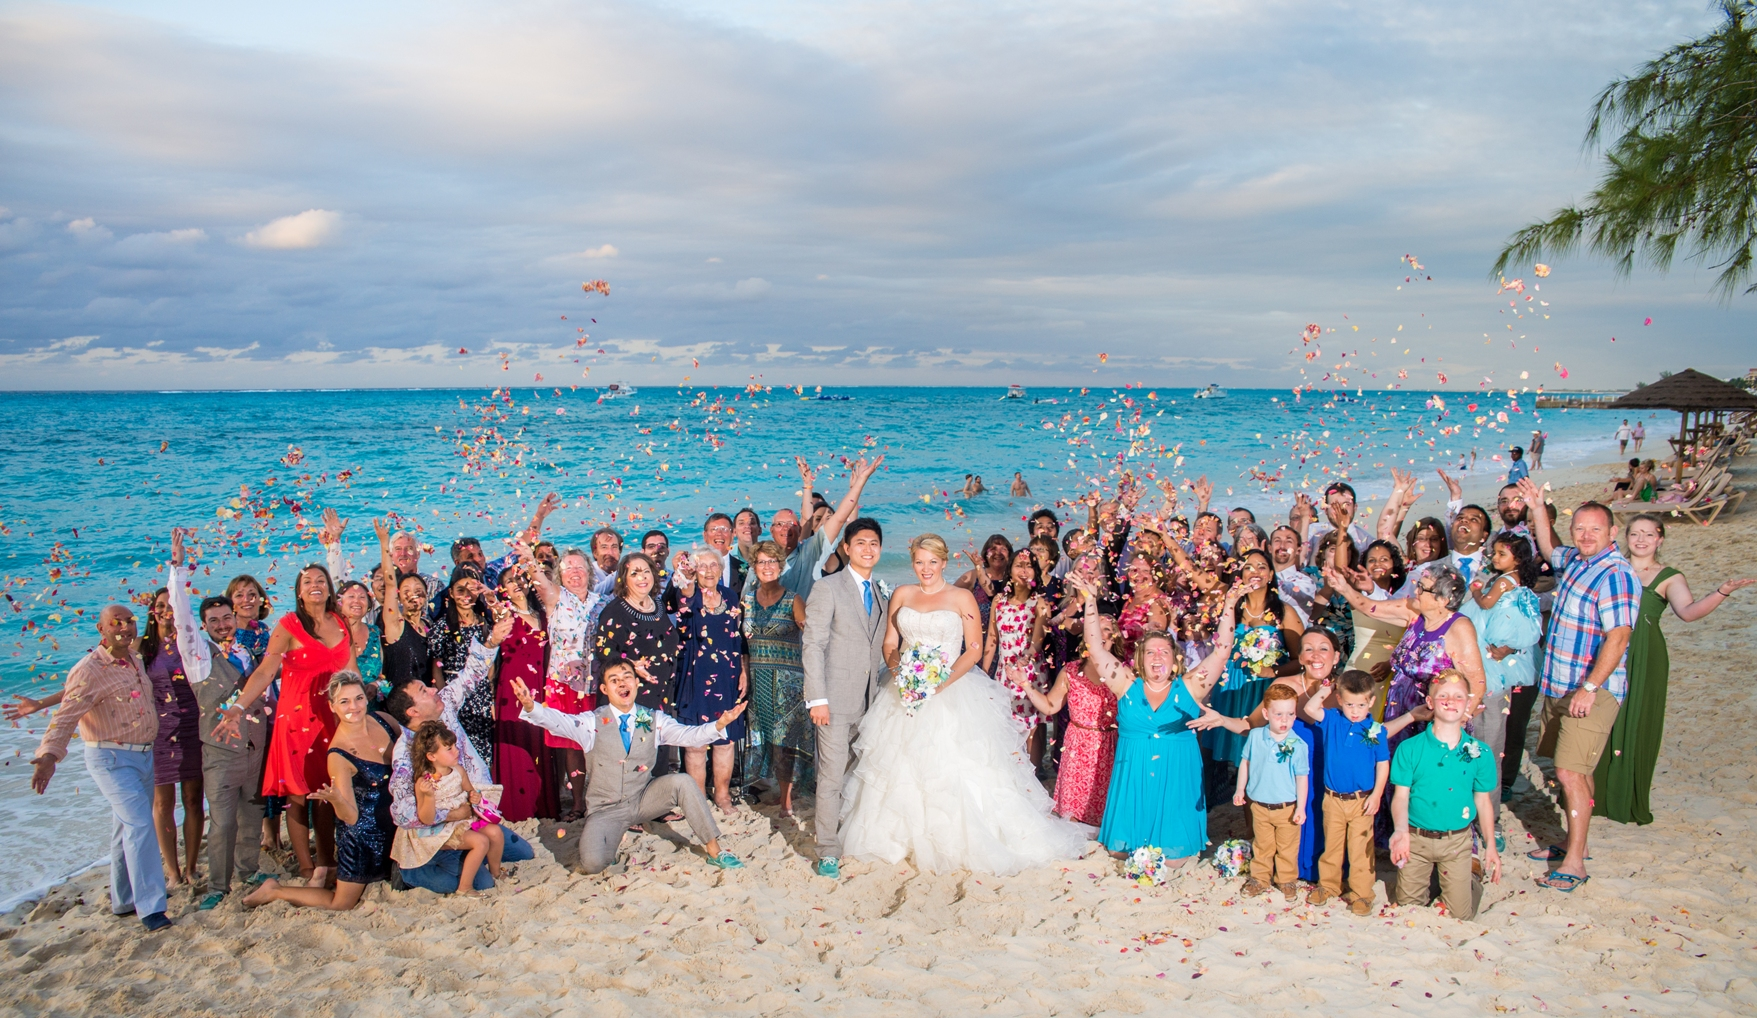 wedding-rose-petal-toss.-zak-and-claire-married-november-12.-2016-at-beaches-resort-in-the-turks-and-caicos-with-flyboy-naturals-rose-petals..2-small-file.442-clairezak-03638.jpg